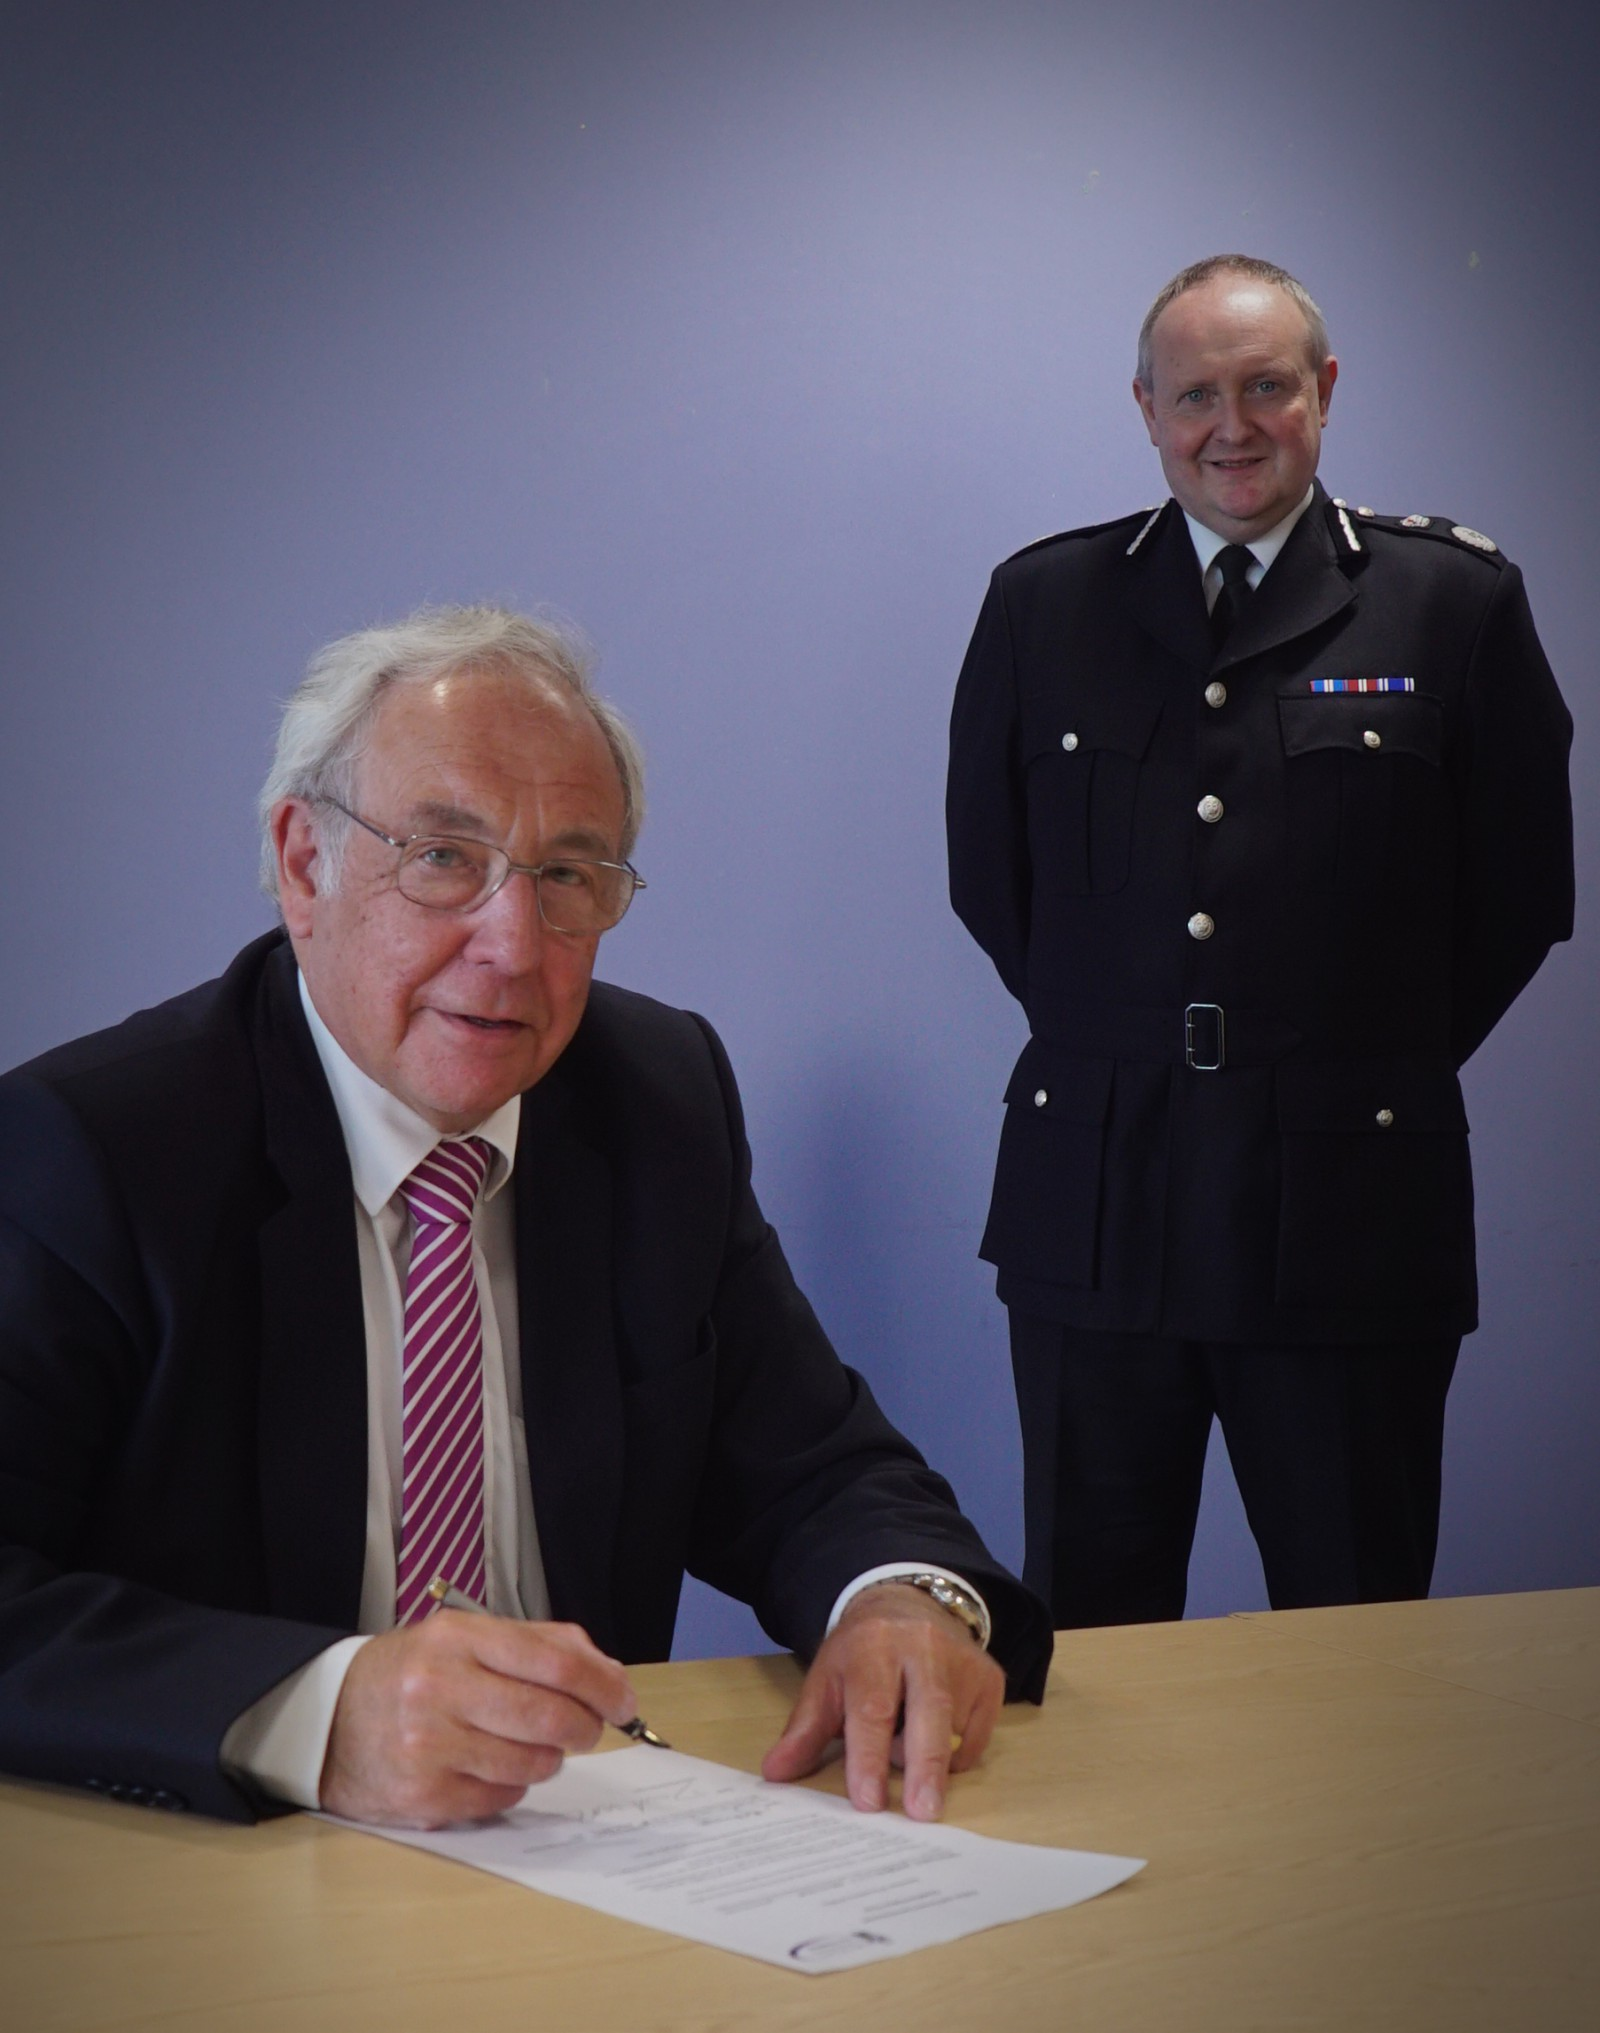 Police and Crime Commissioner for Cheshire John Dwyer and Chief Constable Mark Roberts.